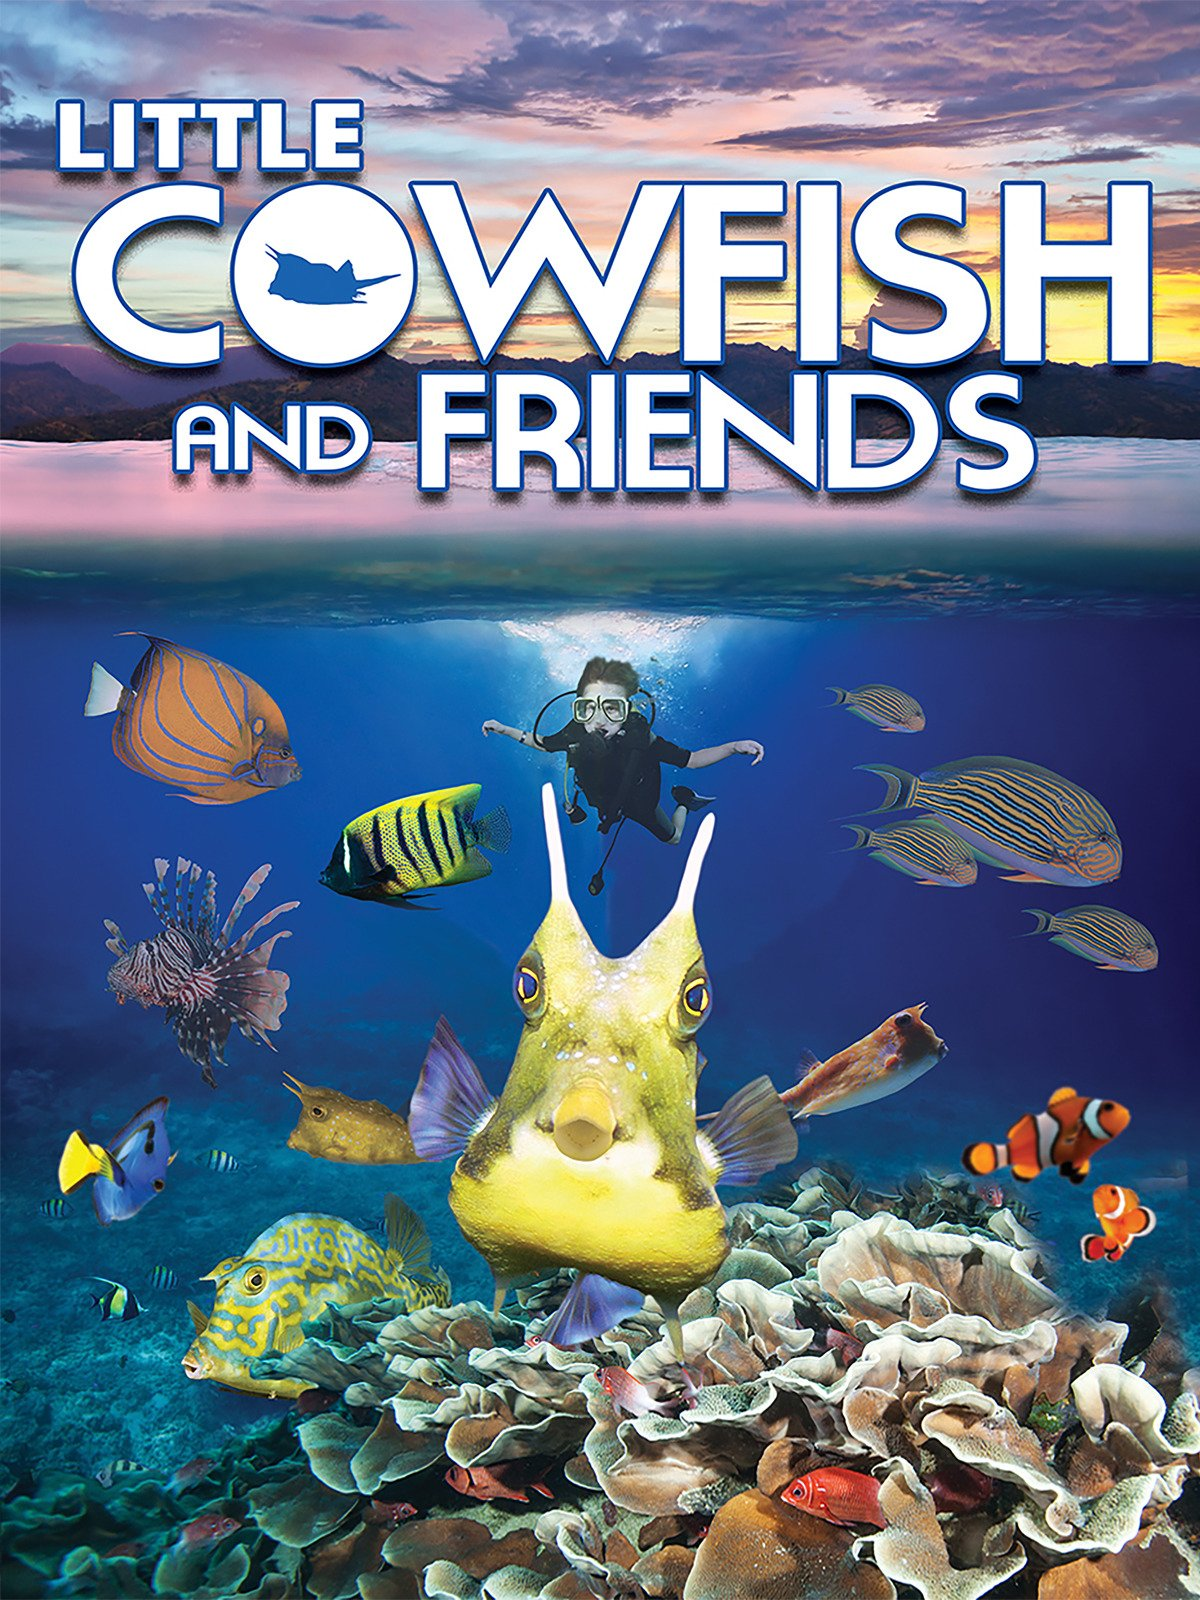 Little Cowfish And Friends